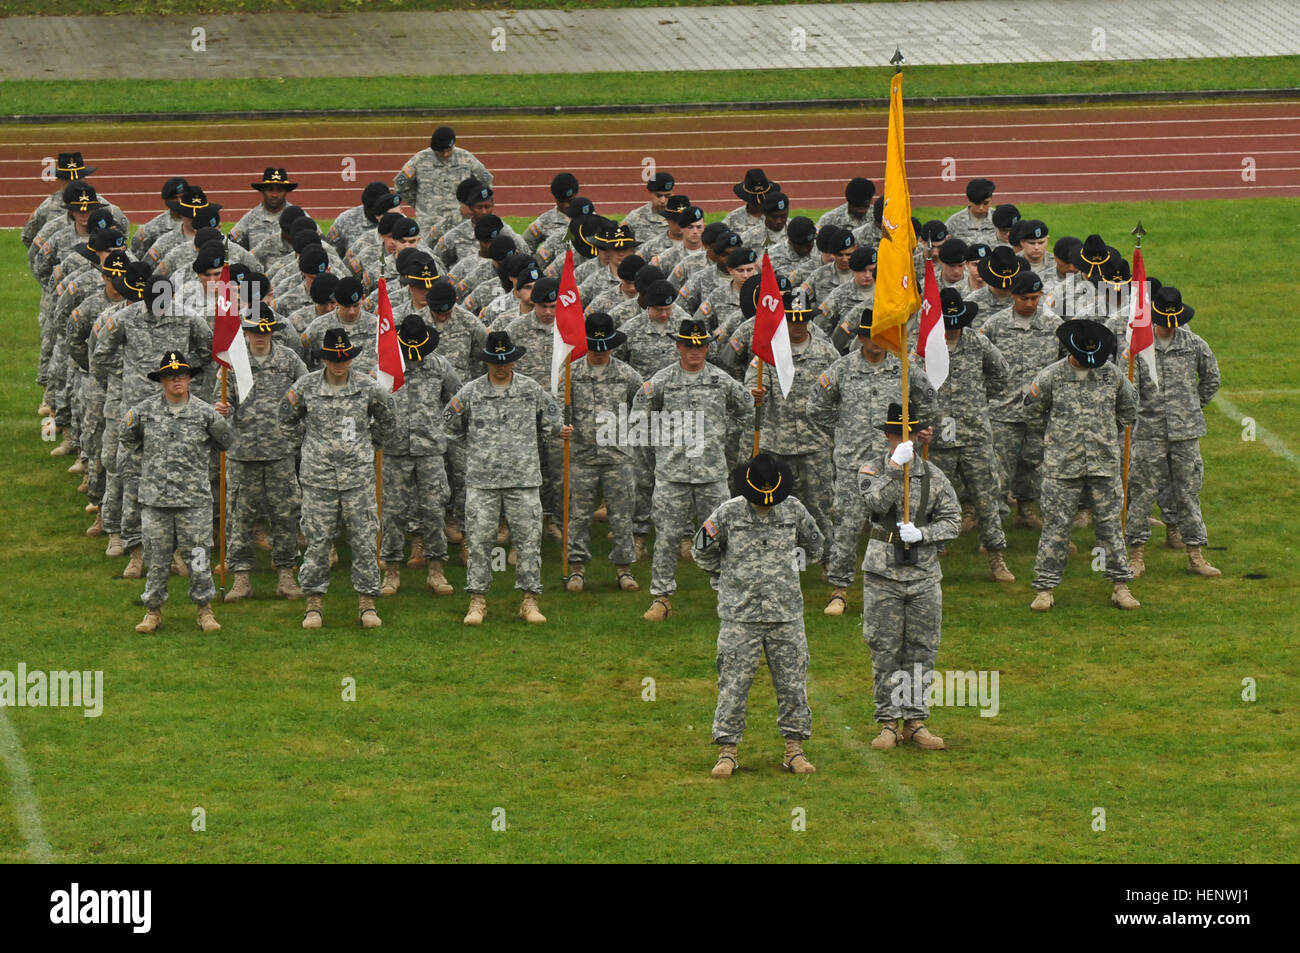 Troops assigned to 4th Squadron, 2nd Cavalry Regiment stand at parade rest while the chaplain conducts a prayer - Stock Image